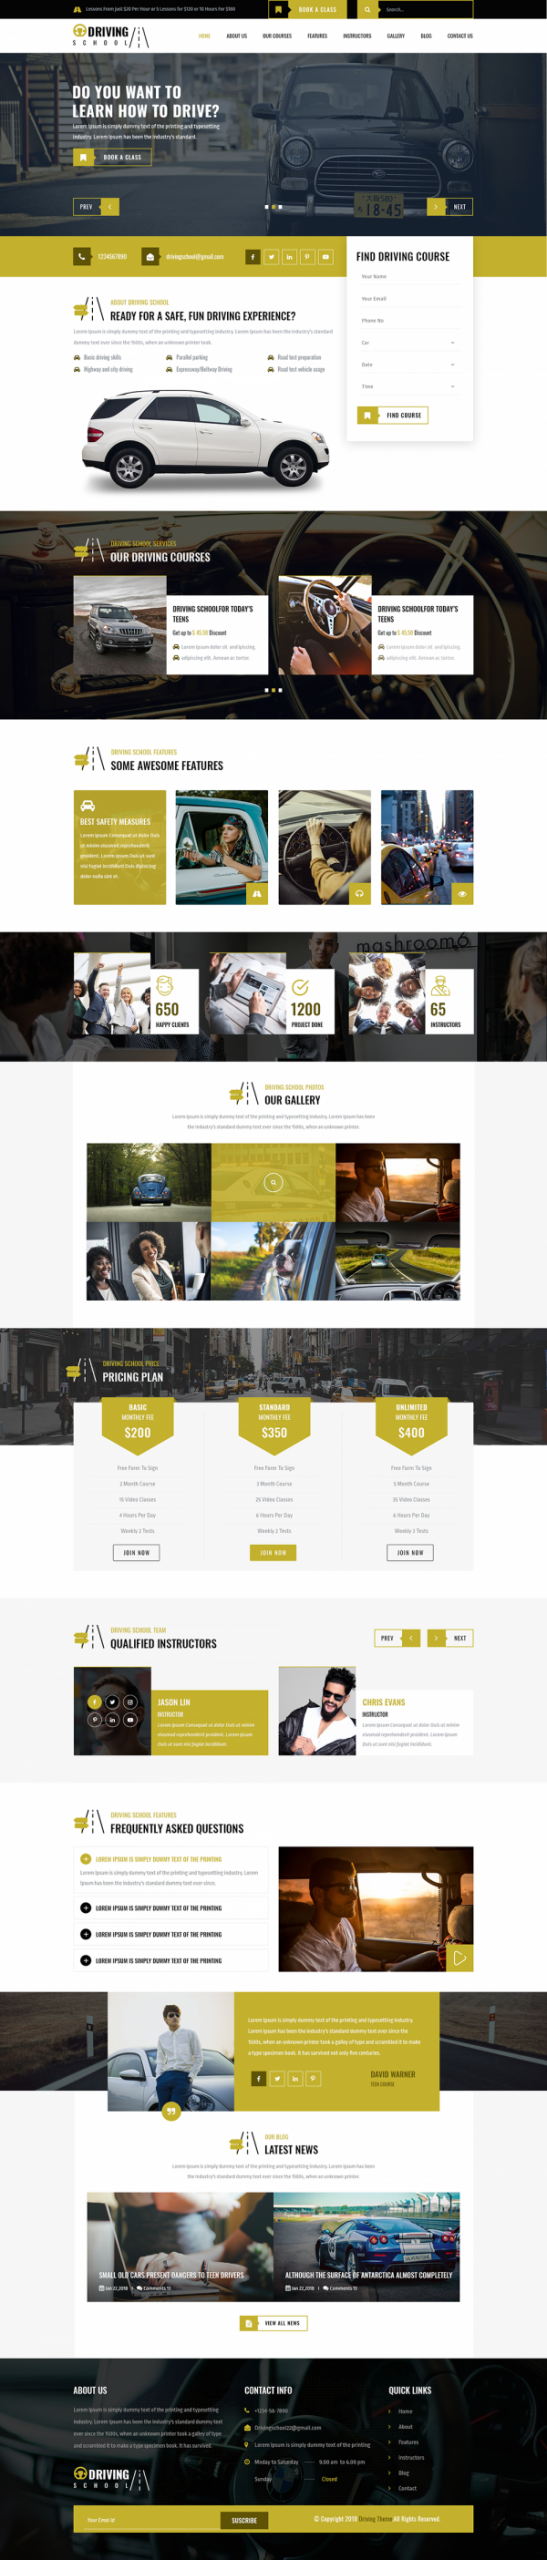 Driving School WordPress Template